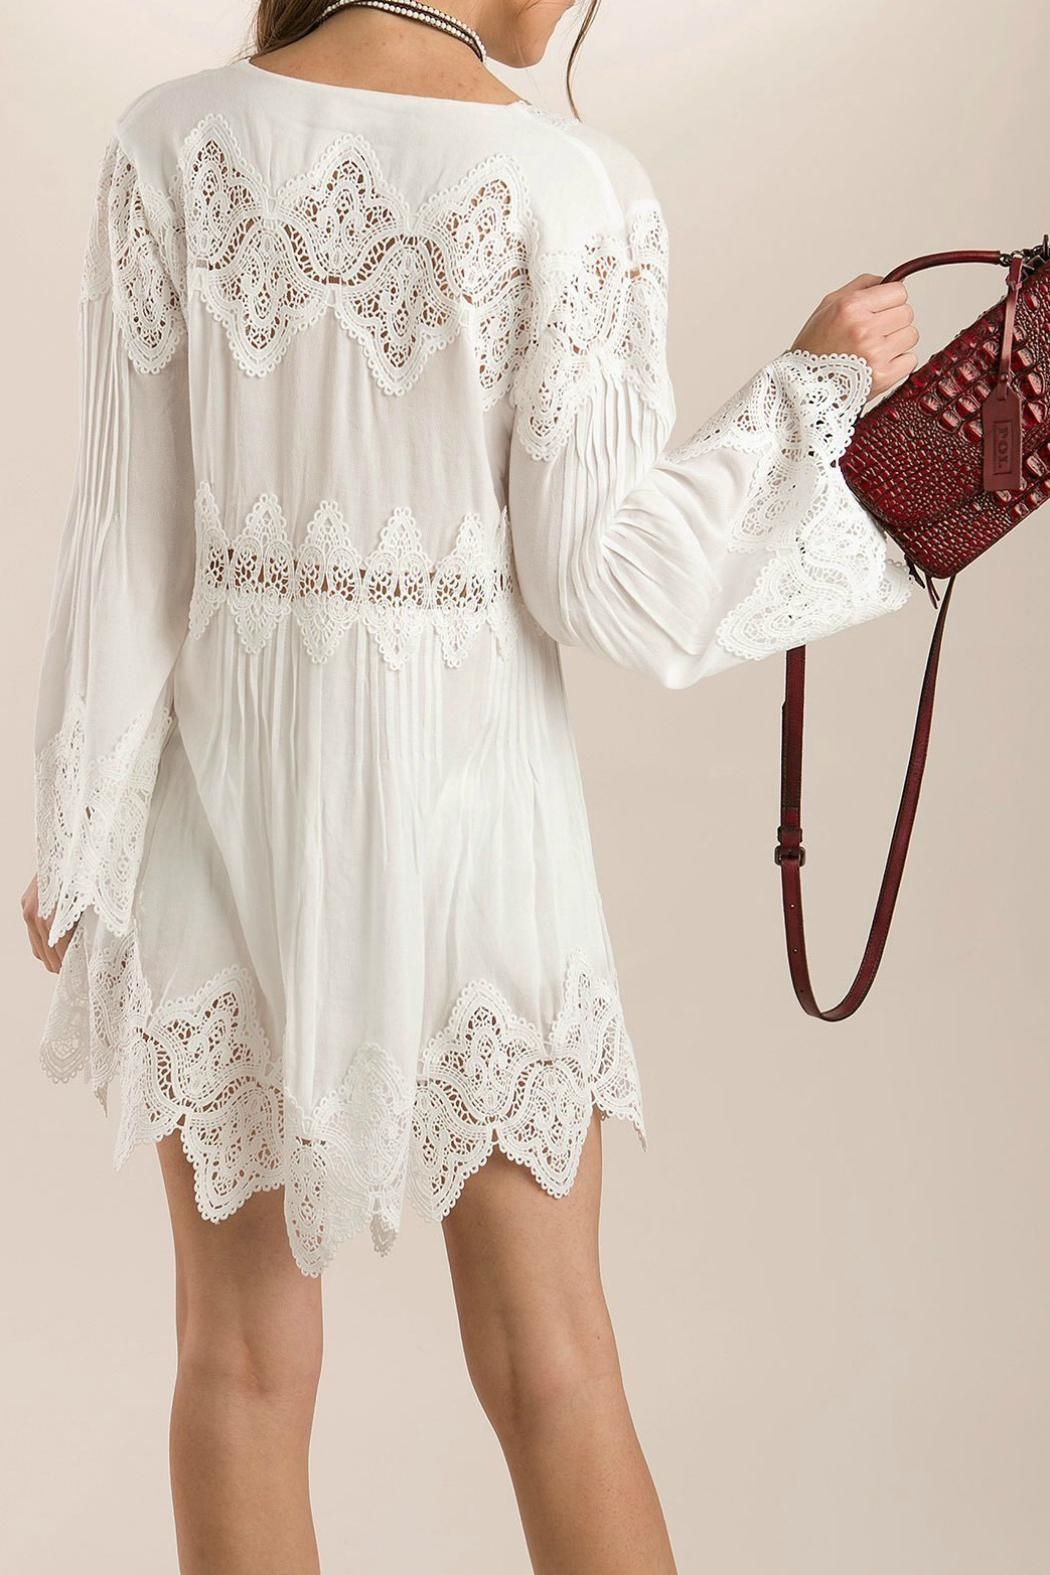 MHGS Bohemian Lace Tunic - Side Cropped Image